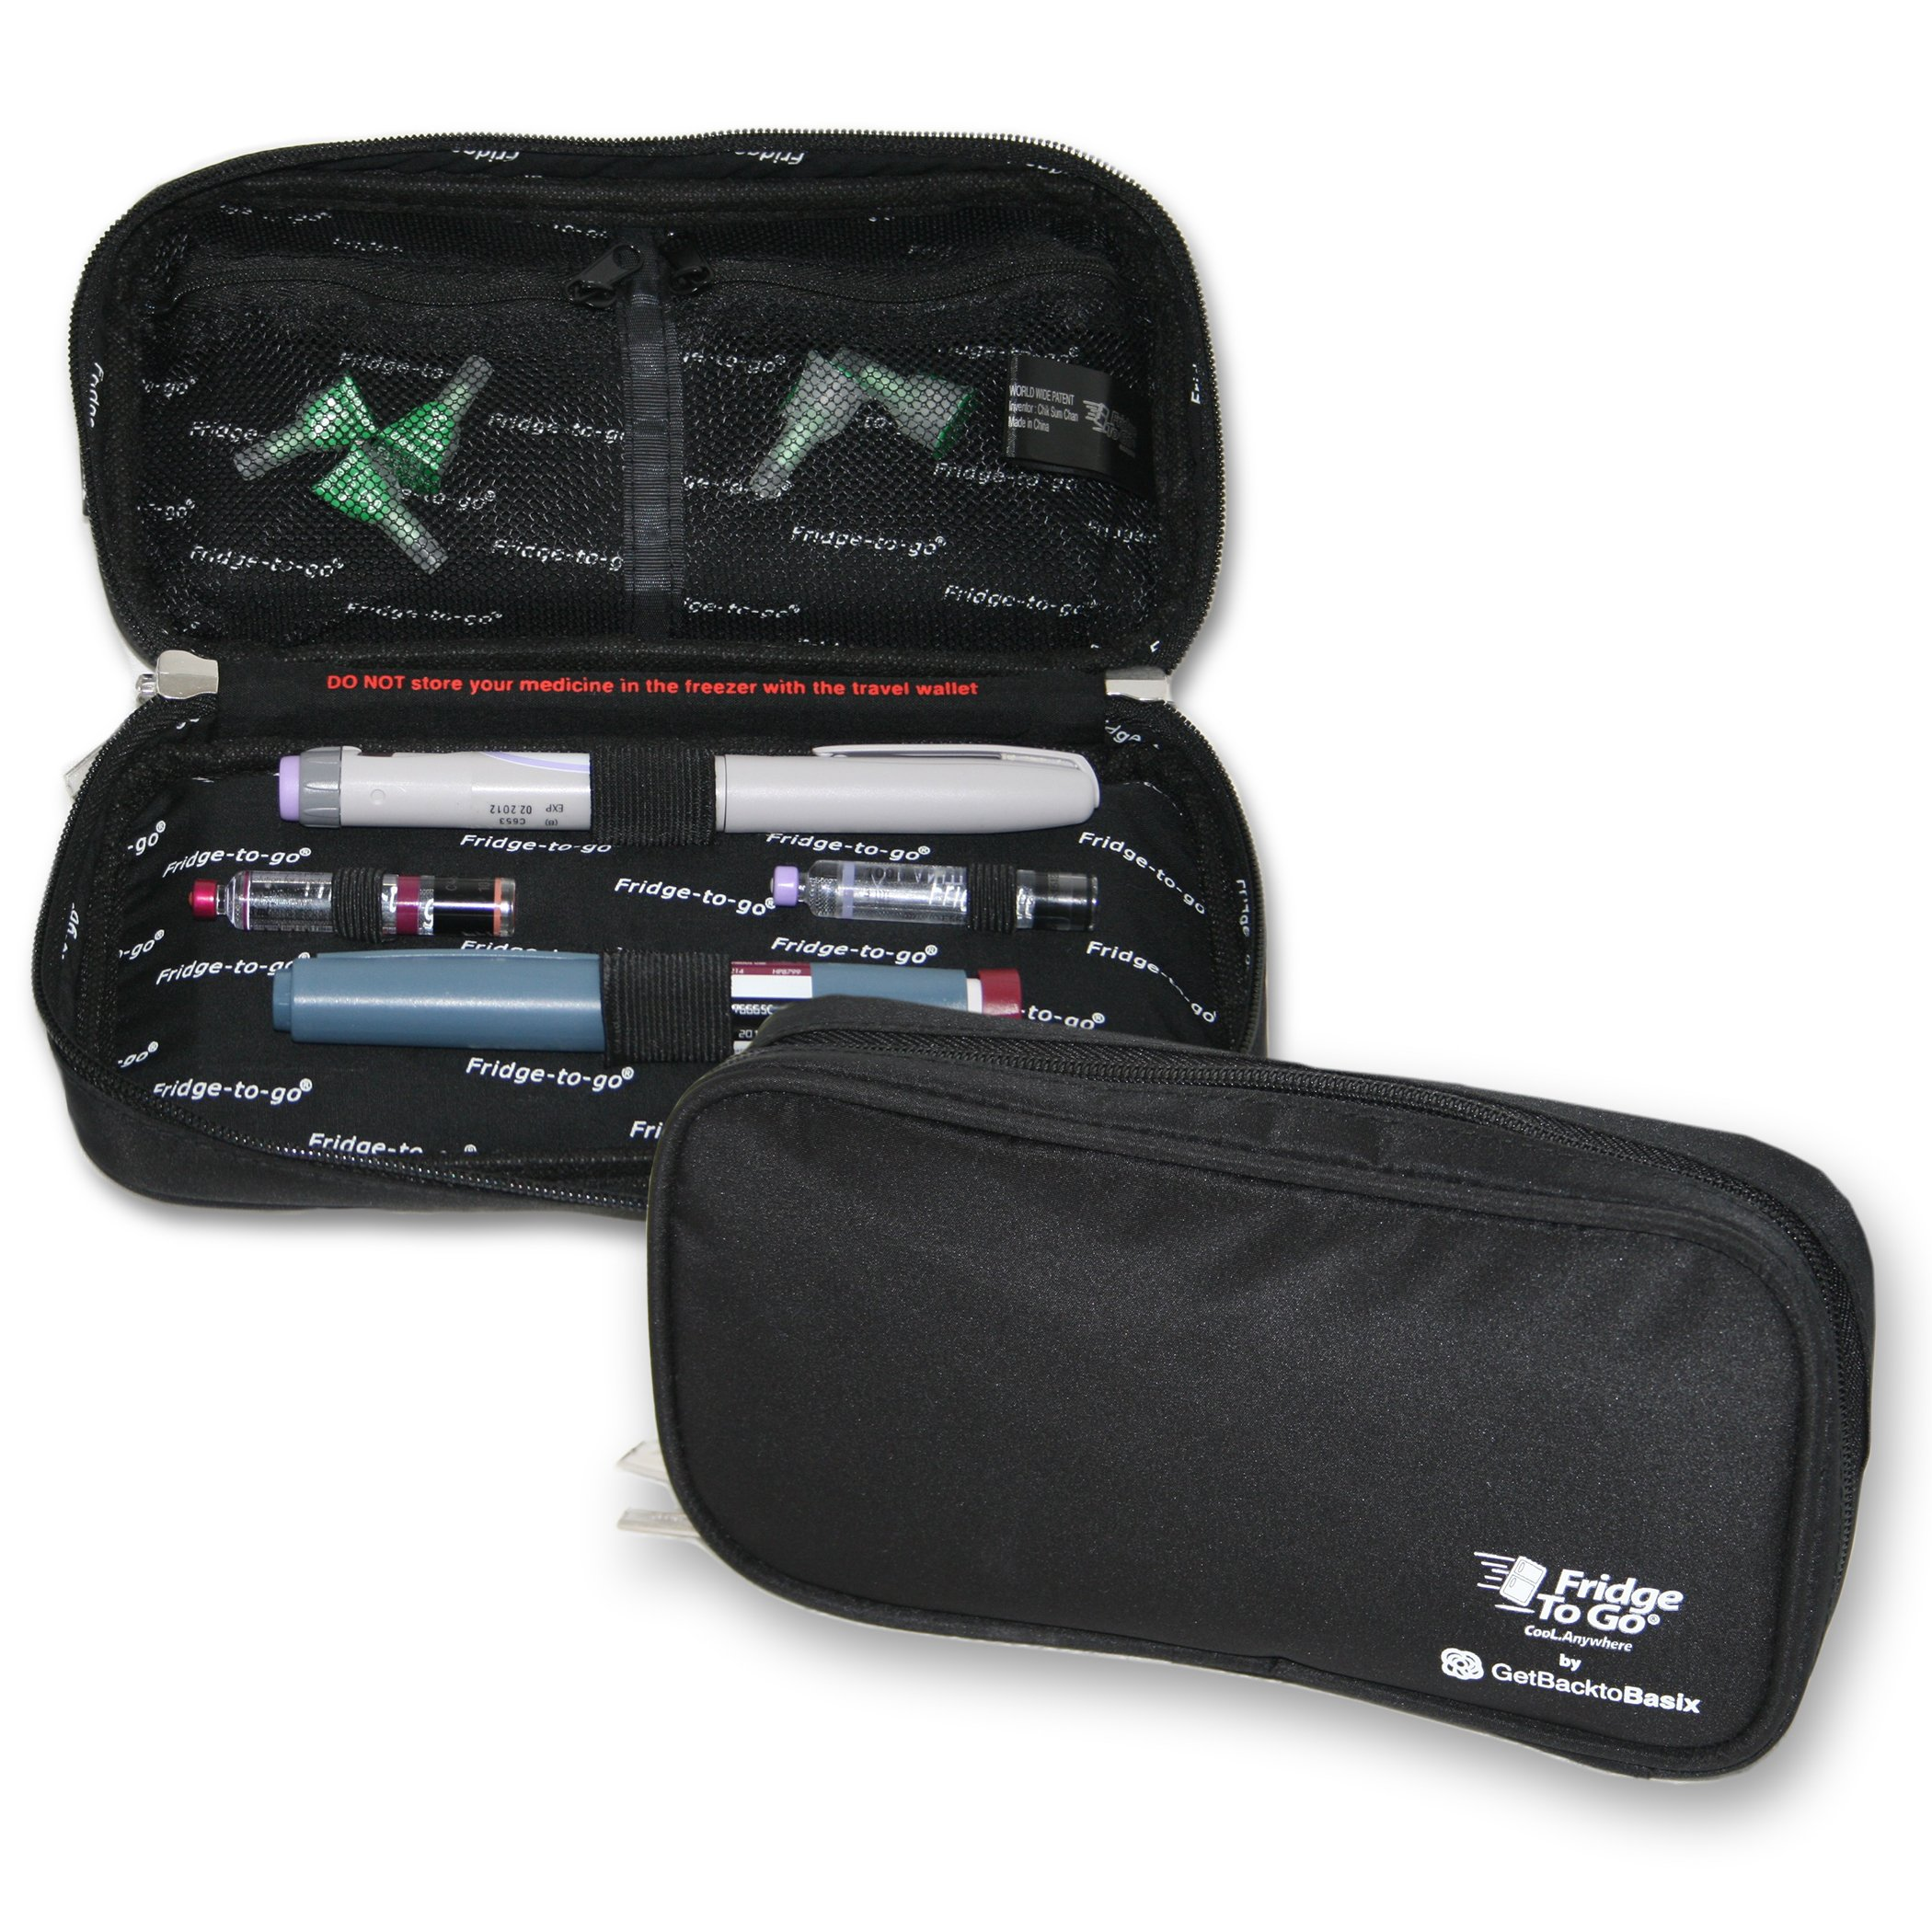 Amazon Com Insulpak Insulated Medication Travel Bag With Electronic Temp Display Cools Up To 30